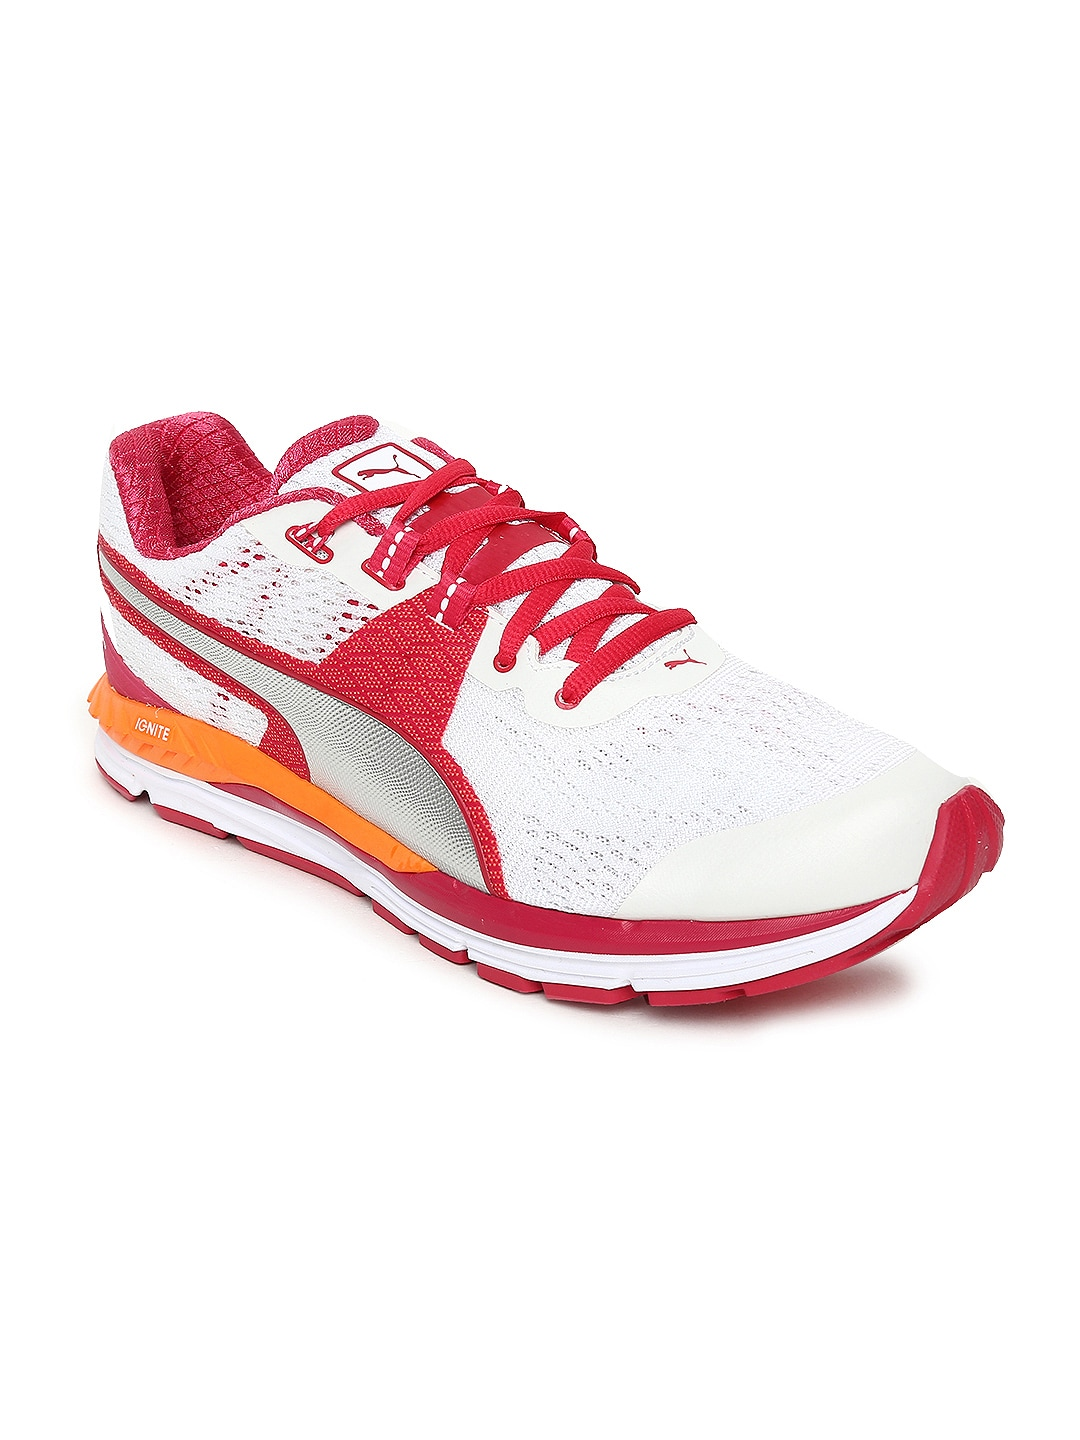 Puma Shoes - Buy Puma Shoes for Men   Women Online in India c754314e5